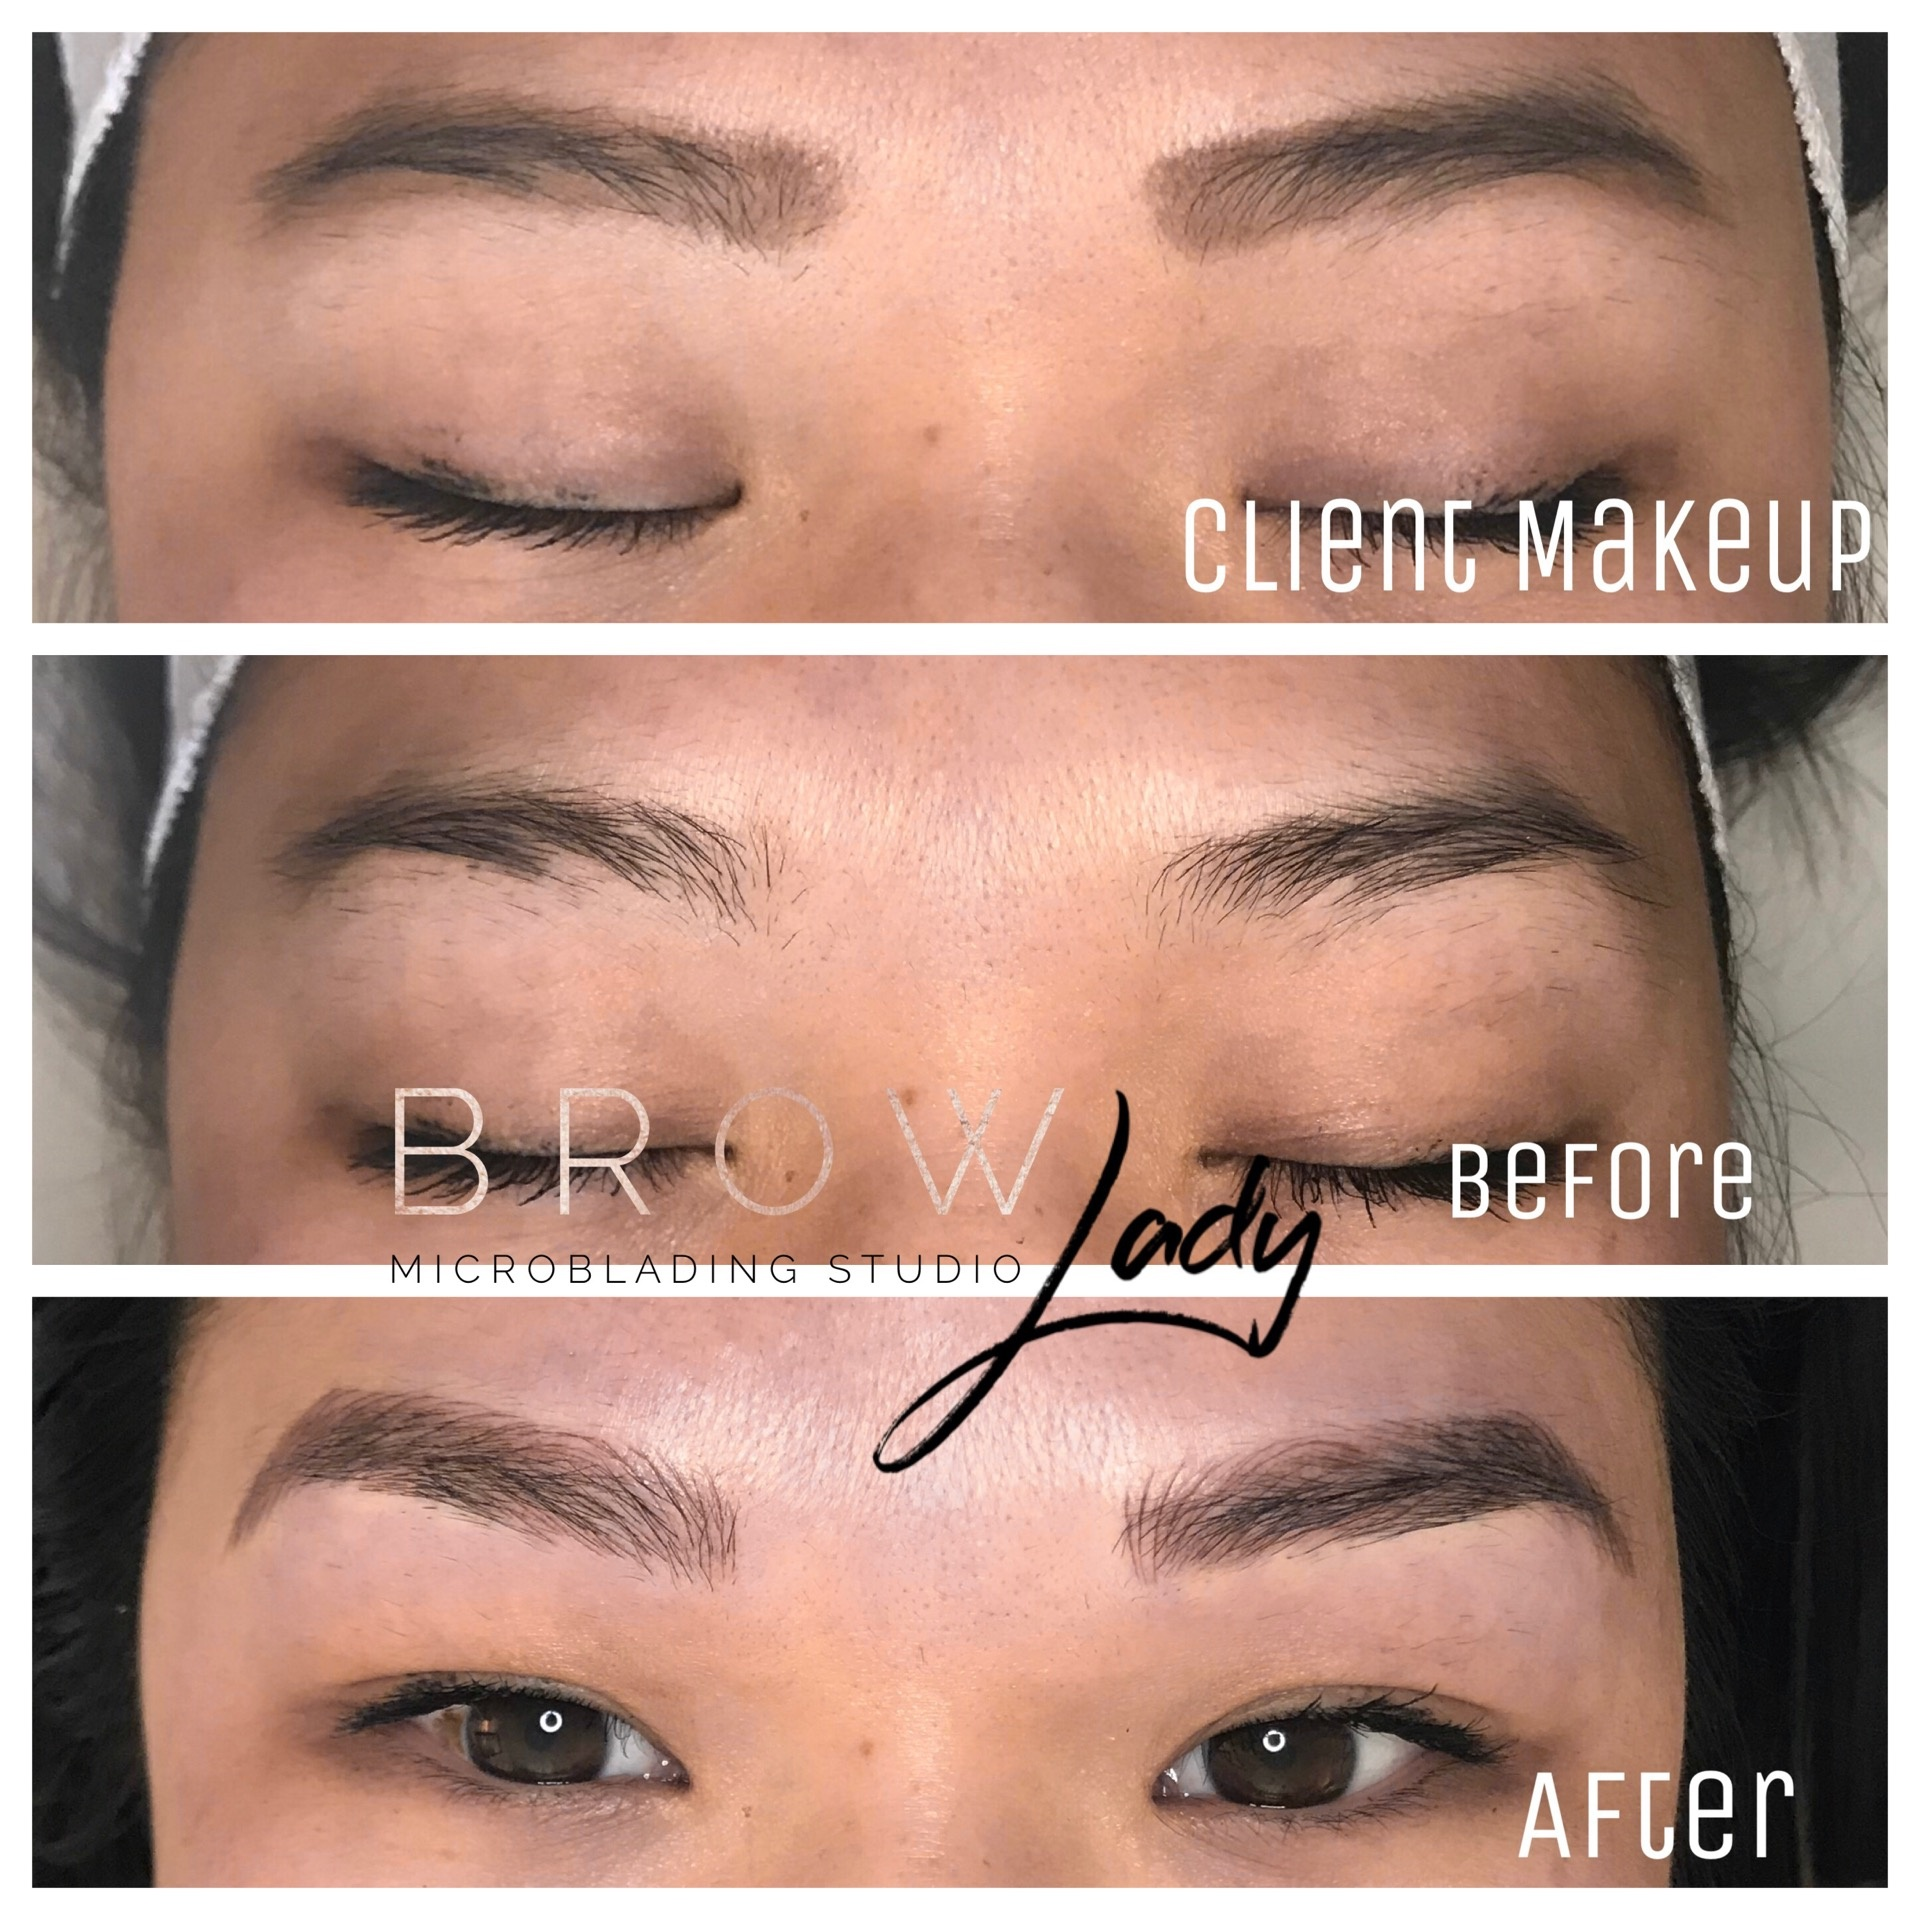 Which are the best pigments for microblading? - Quora